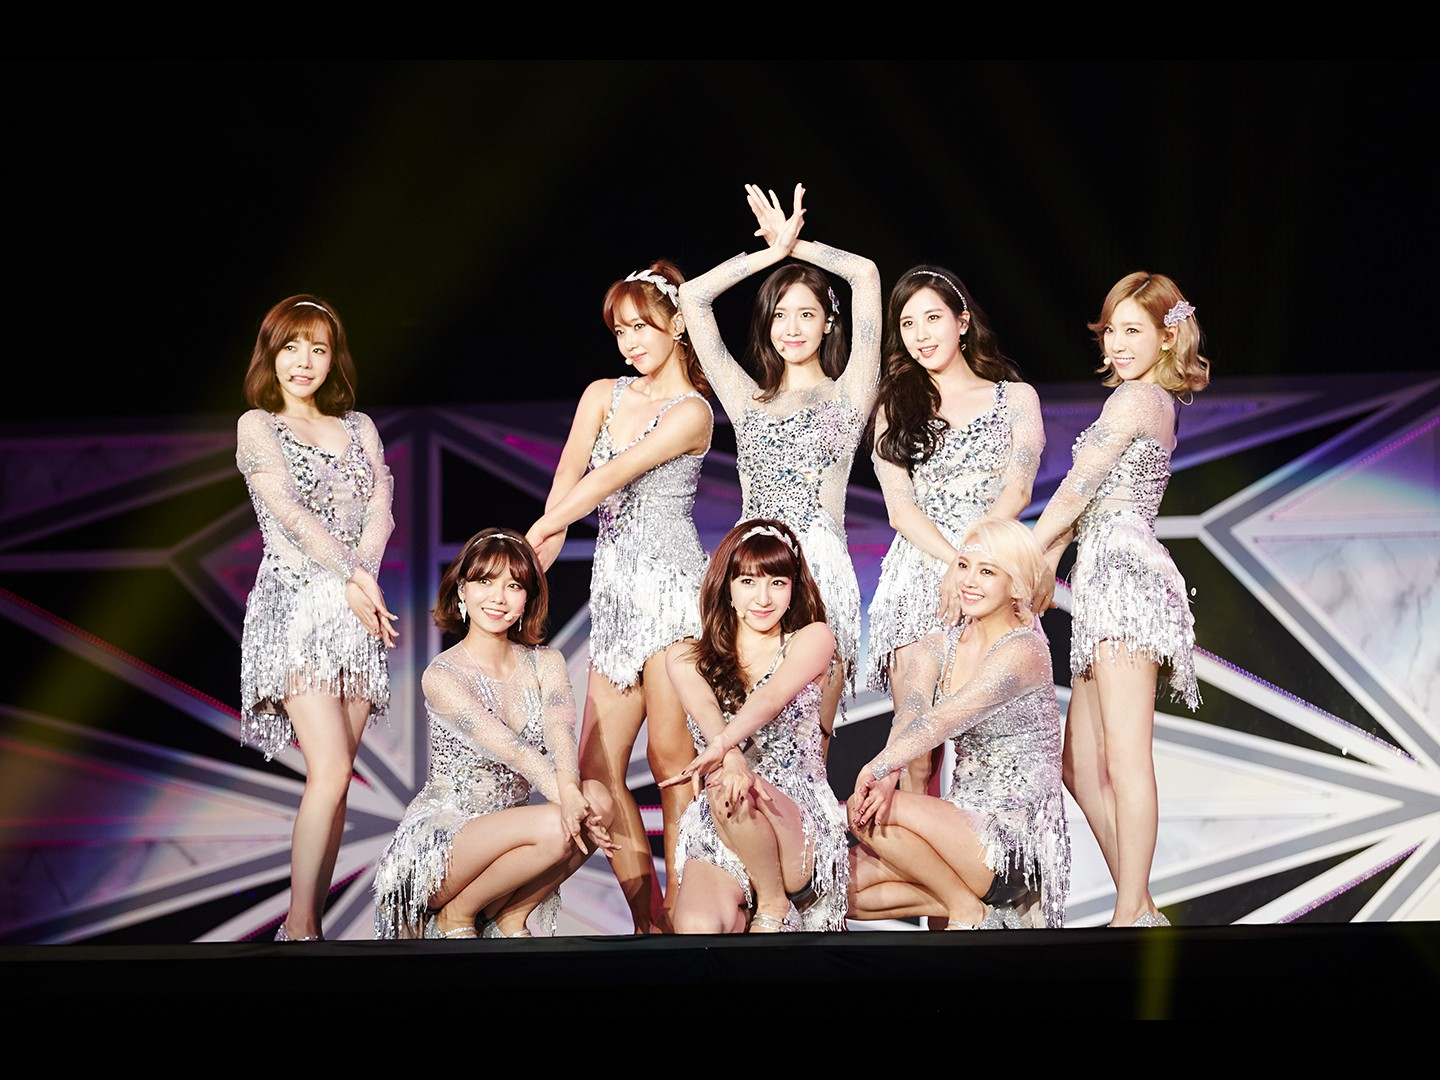 snsd holiday to rememmber